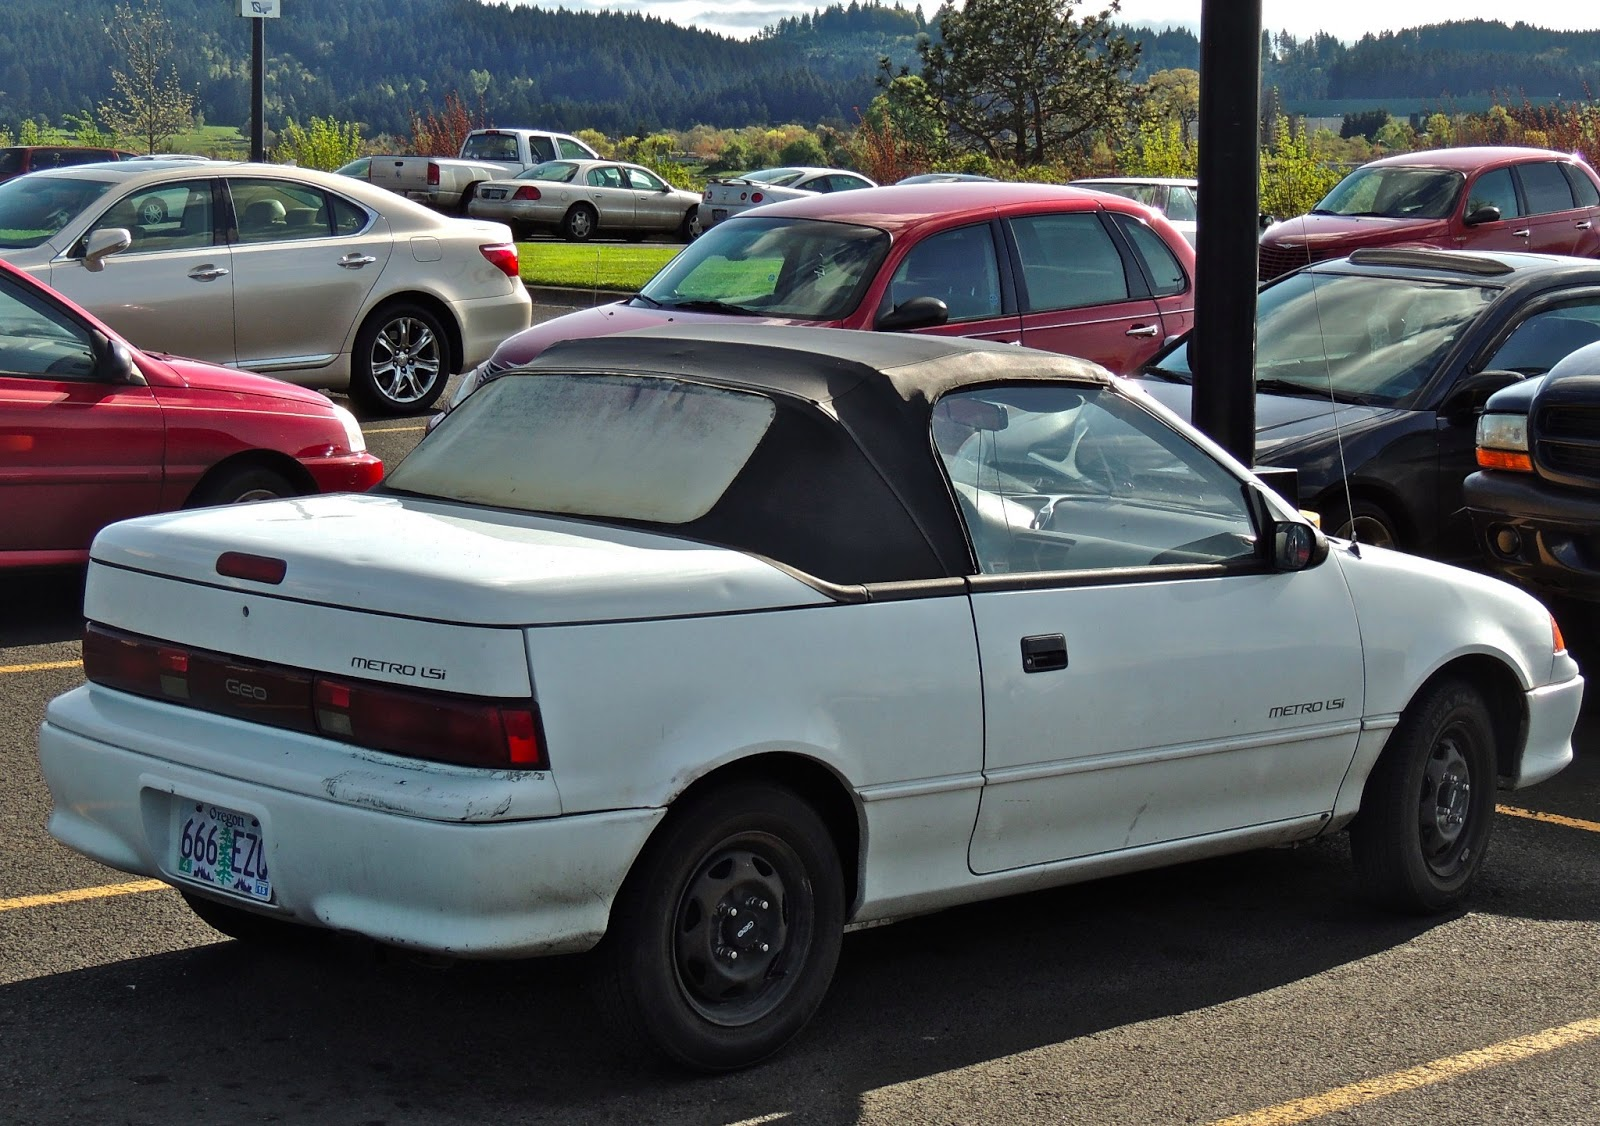 Wal Mart Parking Lot Find Circa 1992 Geo Metro Lsi Convertible